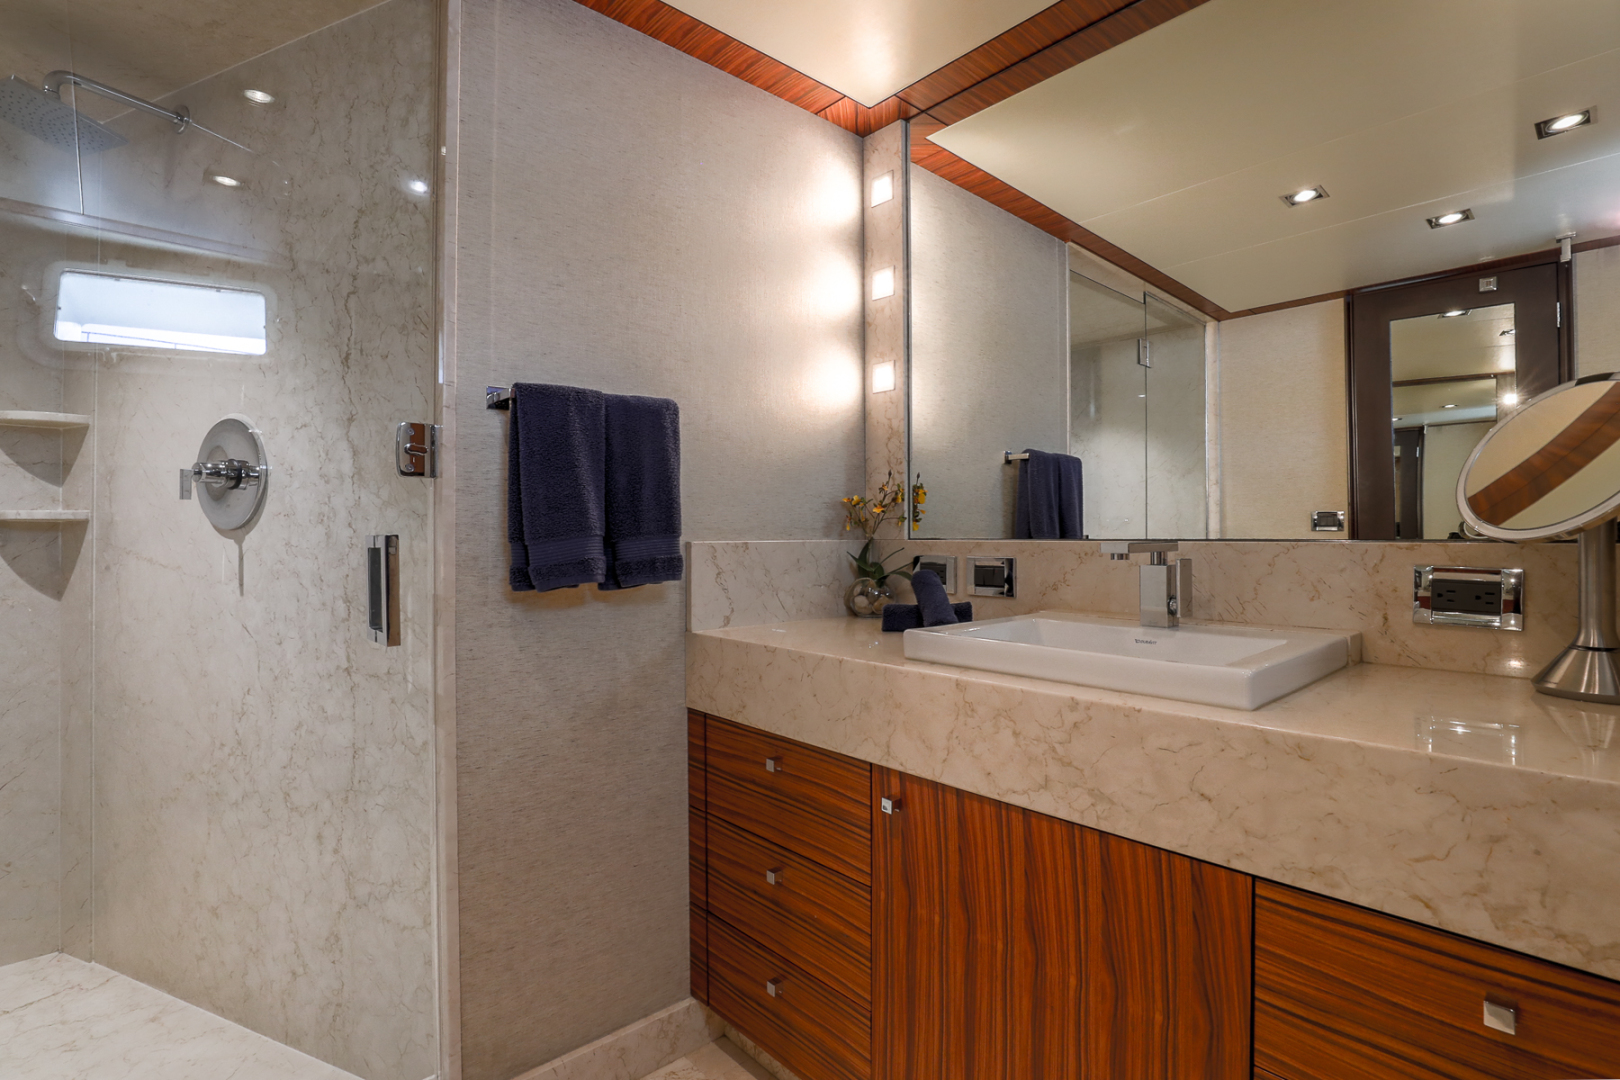 Northcoast-NC125 2011-FUGITIVE *Name Reserved* West Palm Beach-Florida-United States-Starboard VIP Guest Bath-1513473 | Thumbnail